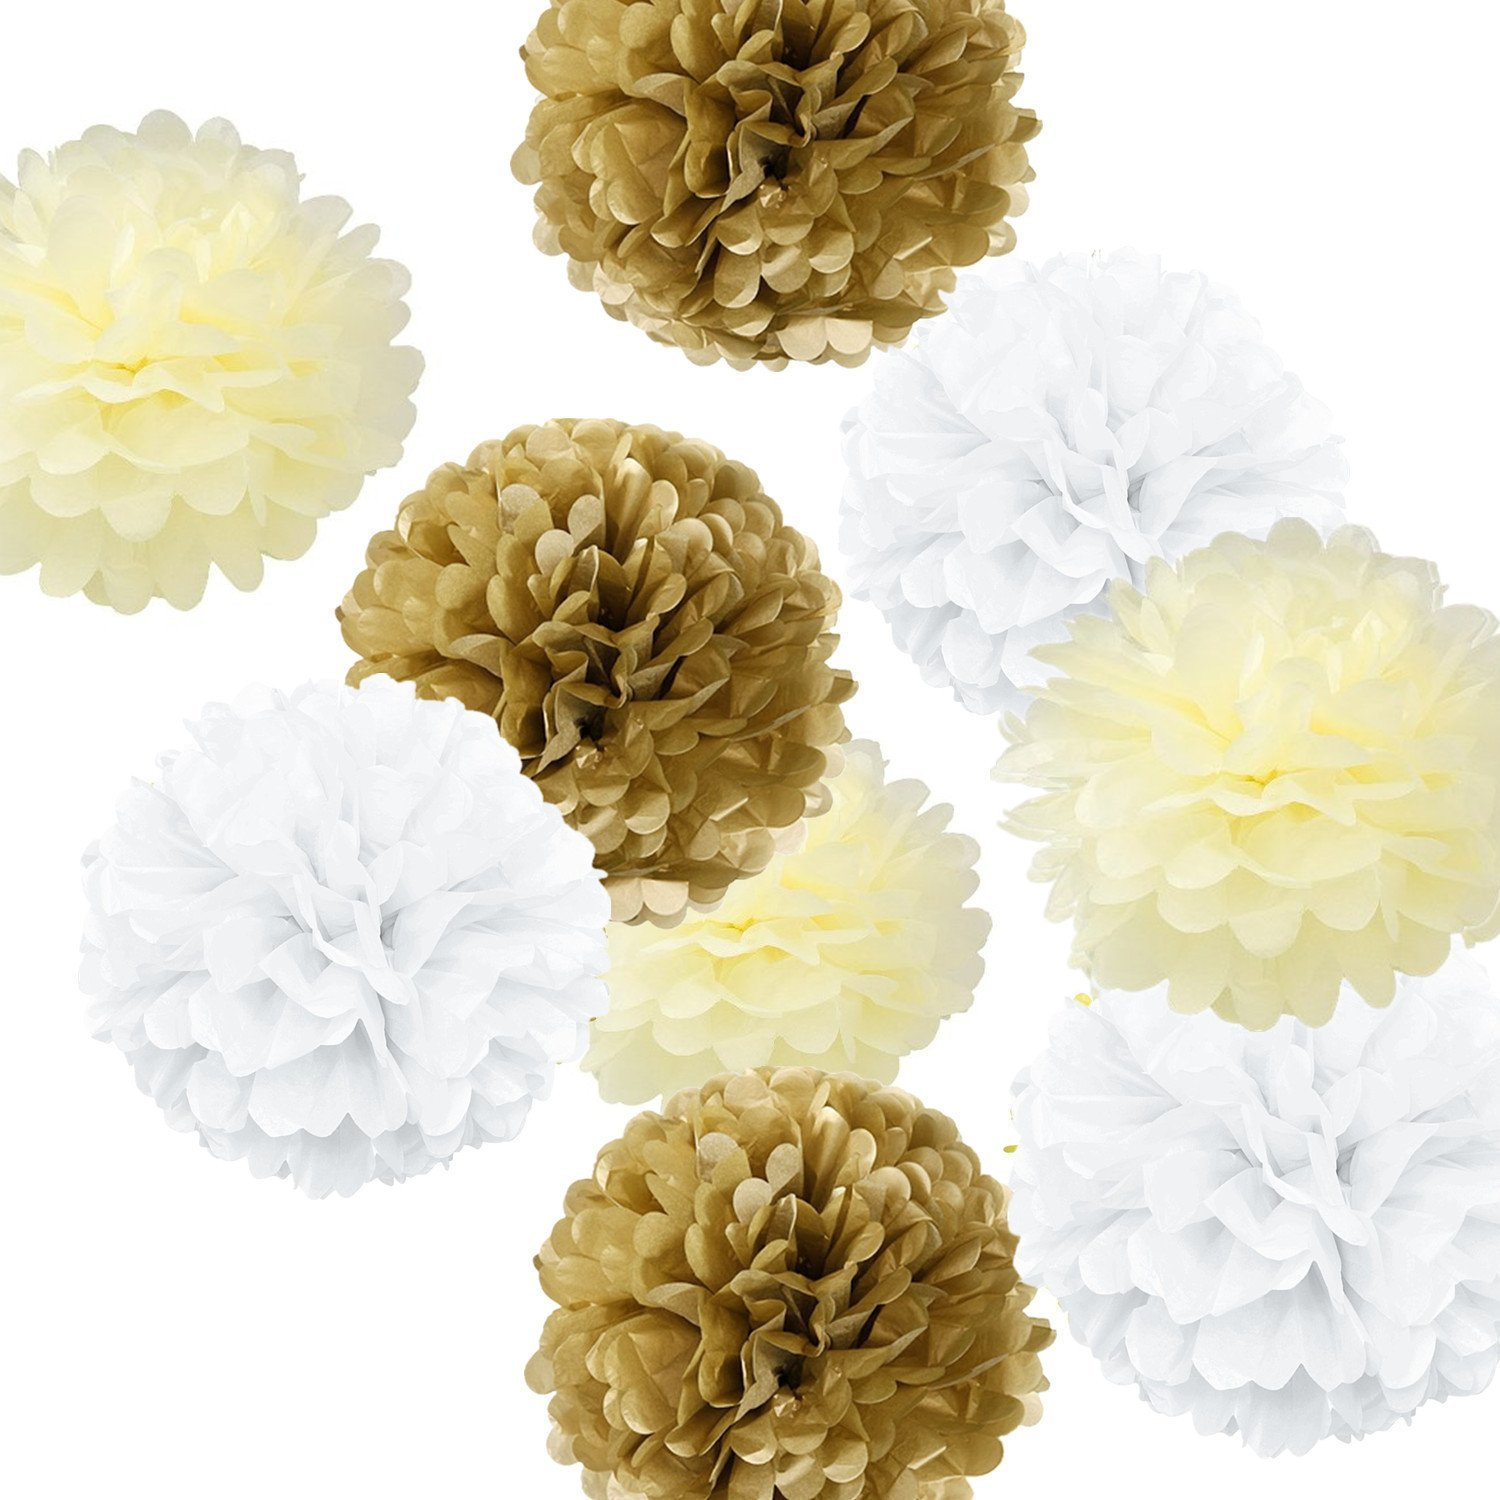 Fonder Mols 9pcs Mixed Sizes 8'' 10'' 14'' White Ivory Tan Party Tissue Pom Poms Kit Paper Flowers Set Ball Weddings Birthday Bridal Baby Showers Nursery Décor